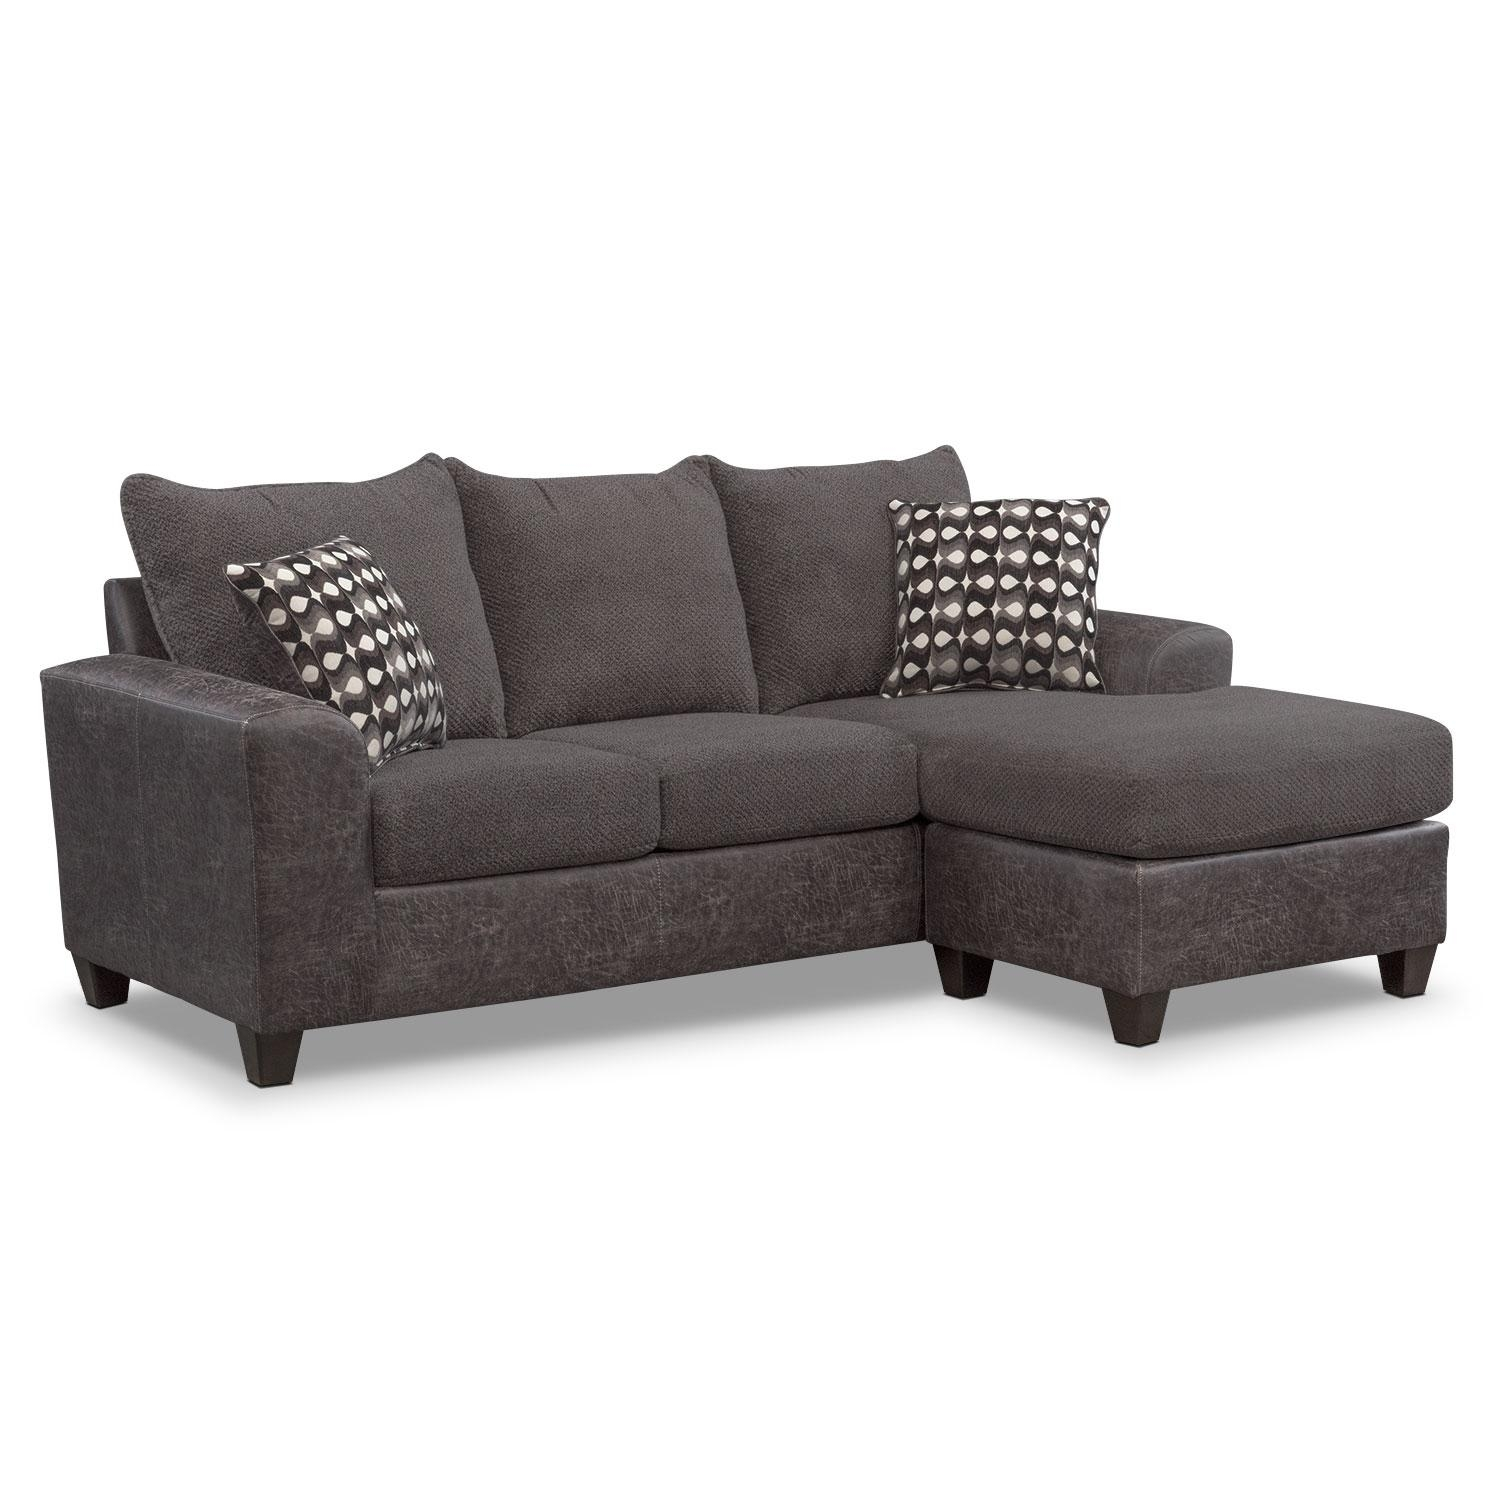 20 Best Overstuffed Sofas And Chairs Sofa Ideas